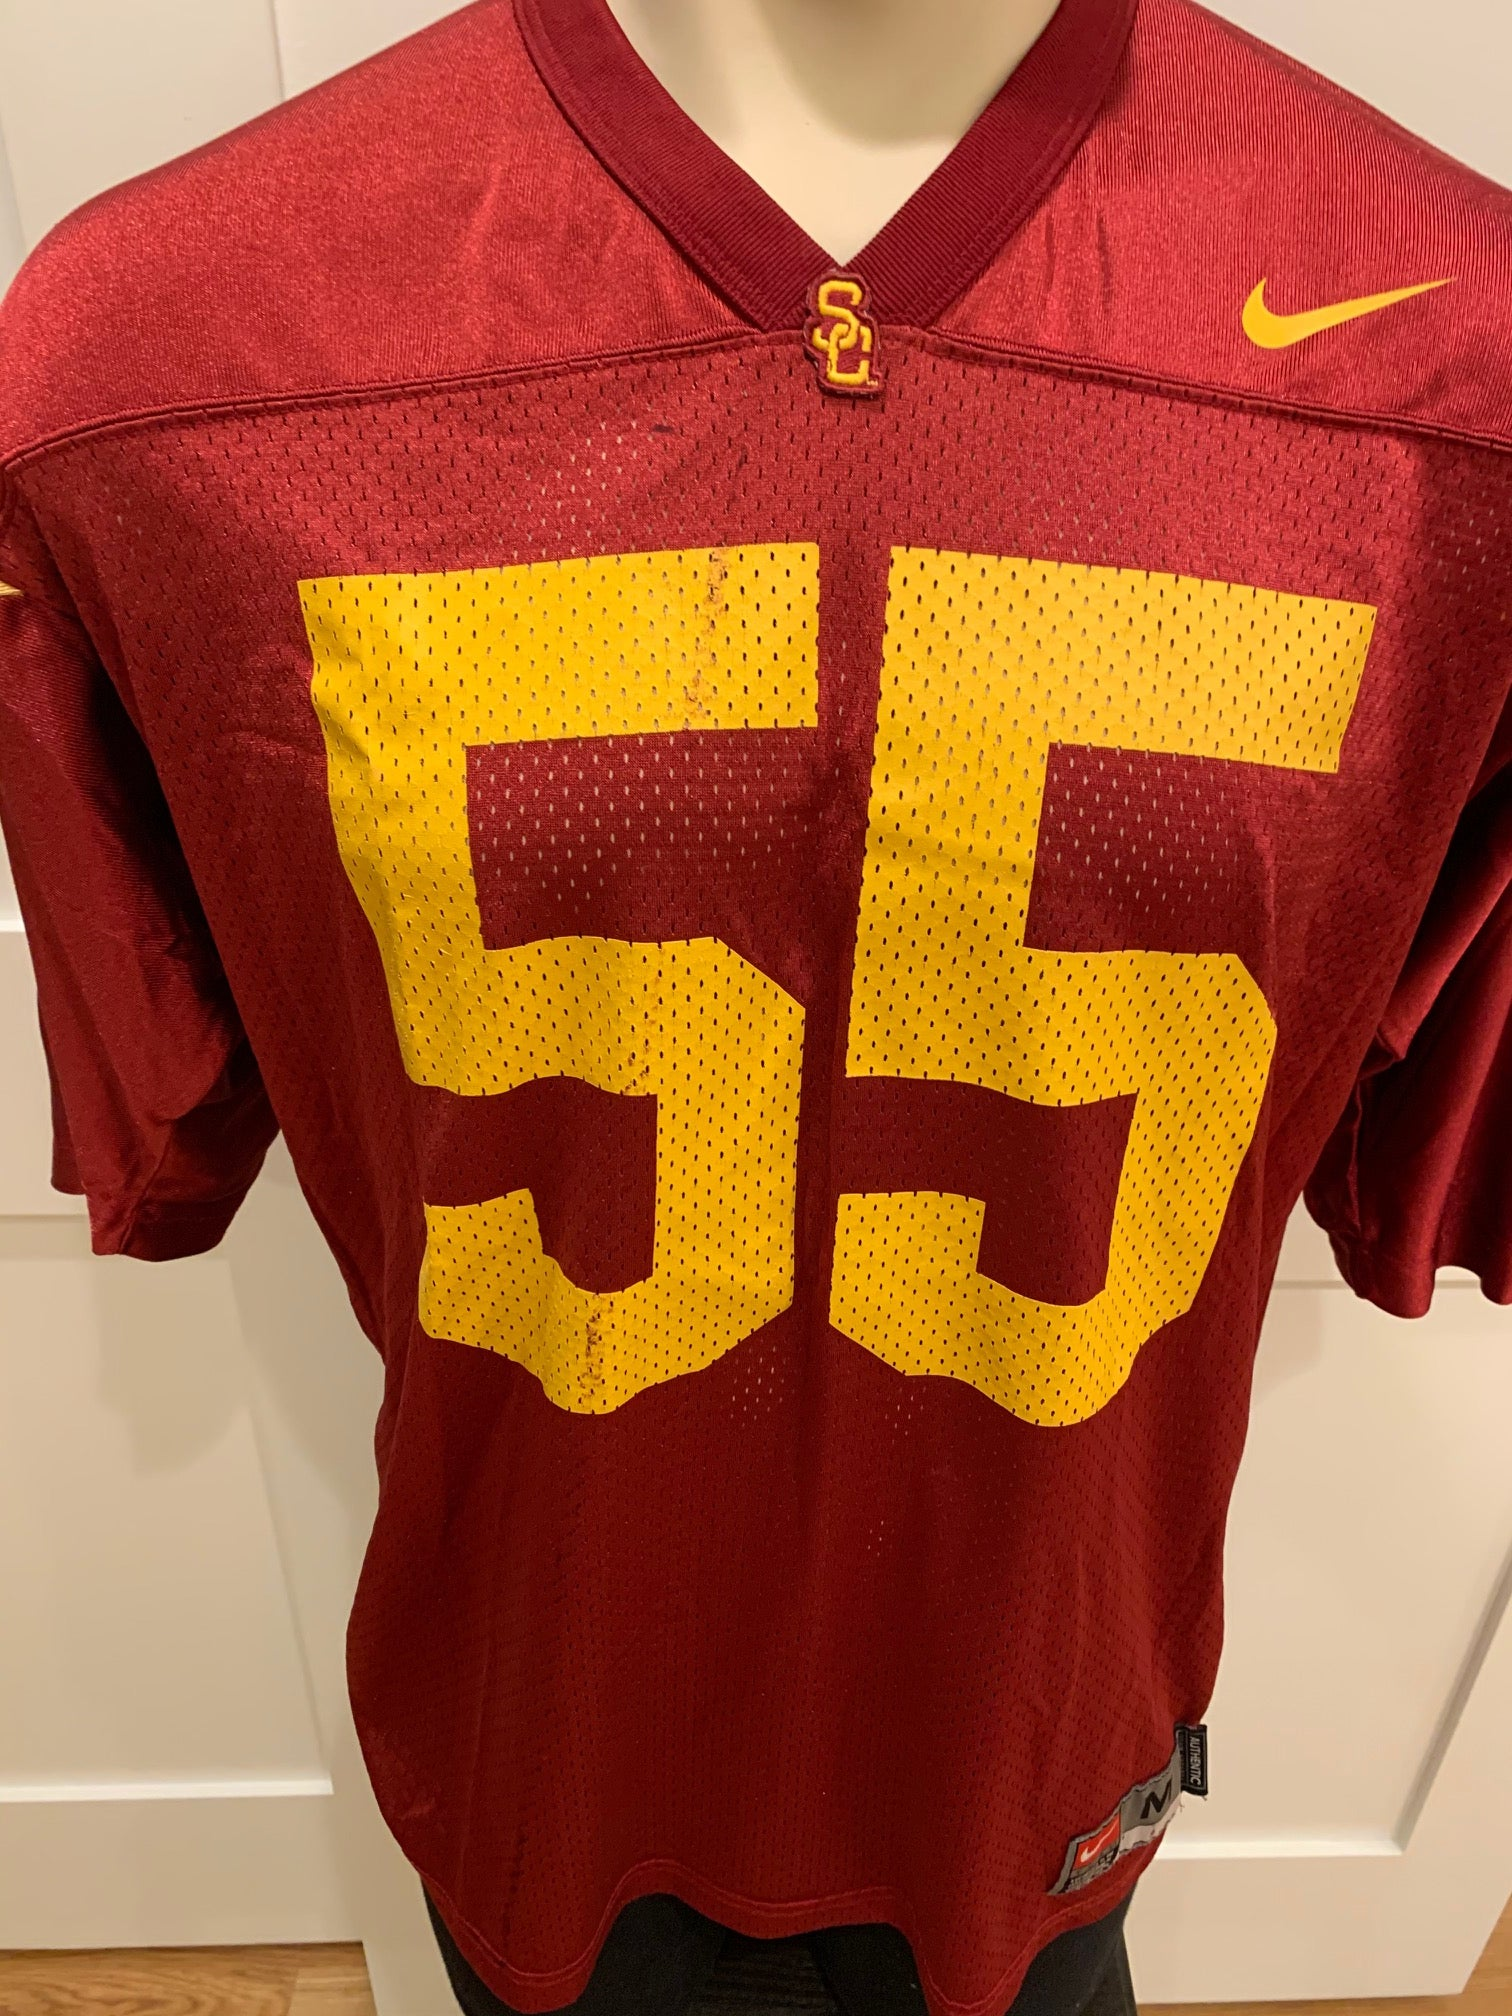 Junior Seau #55 USC Jersey - Medium